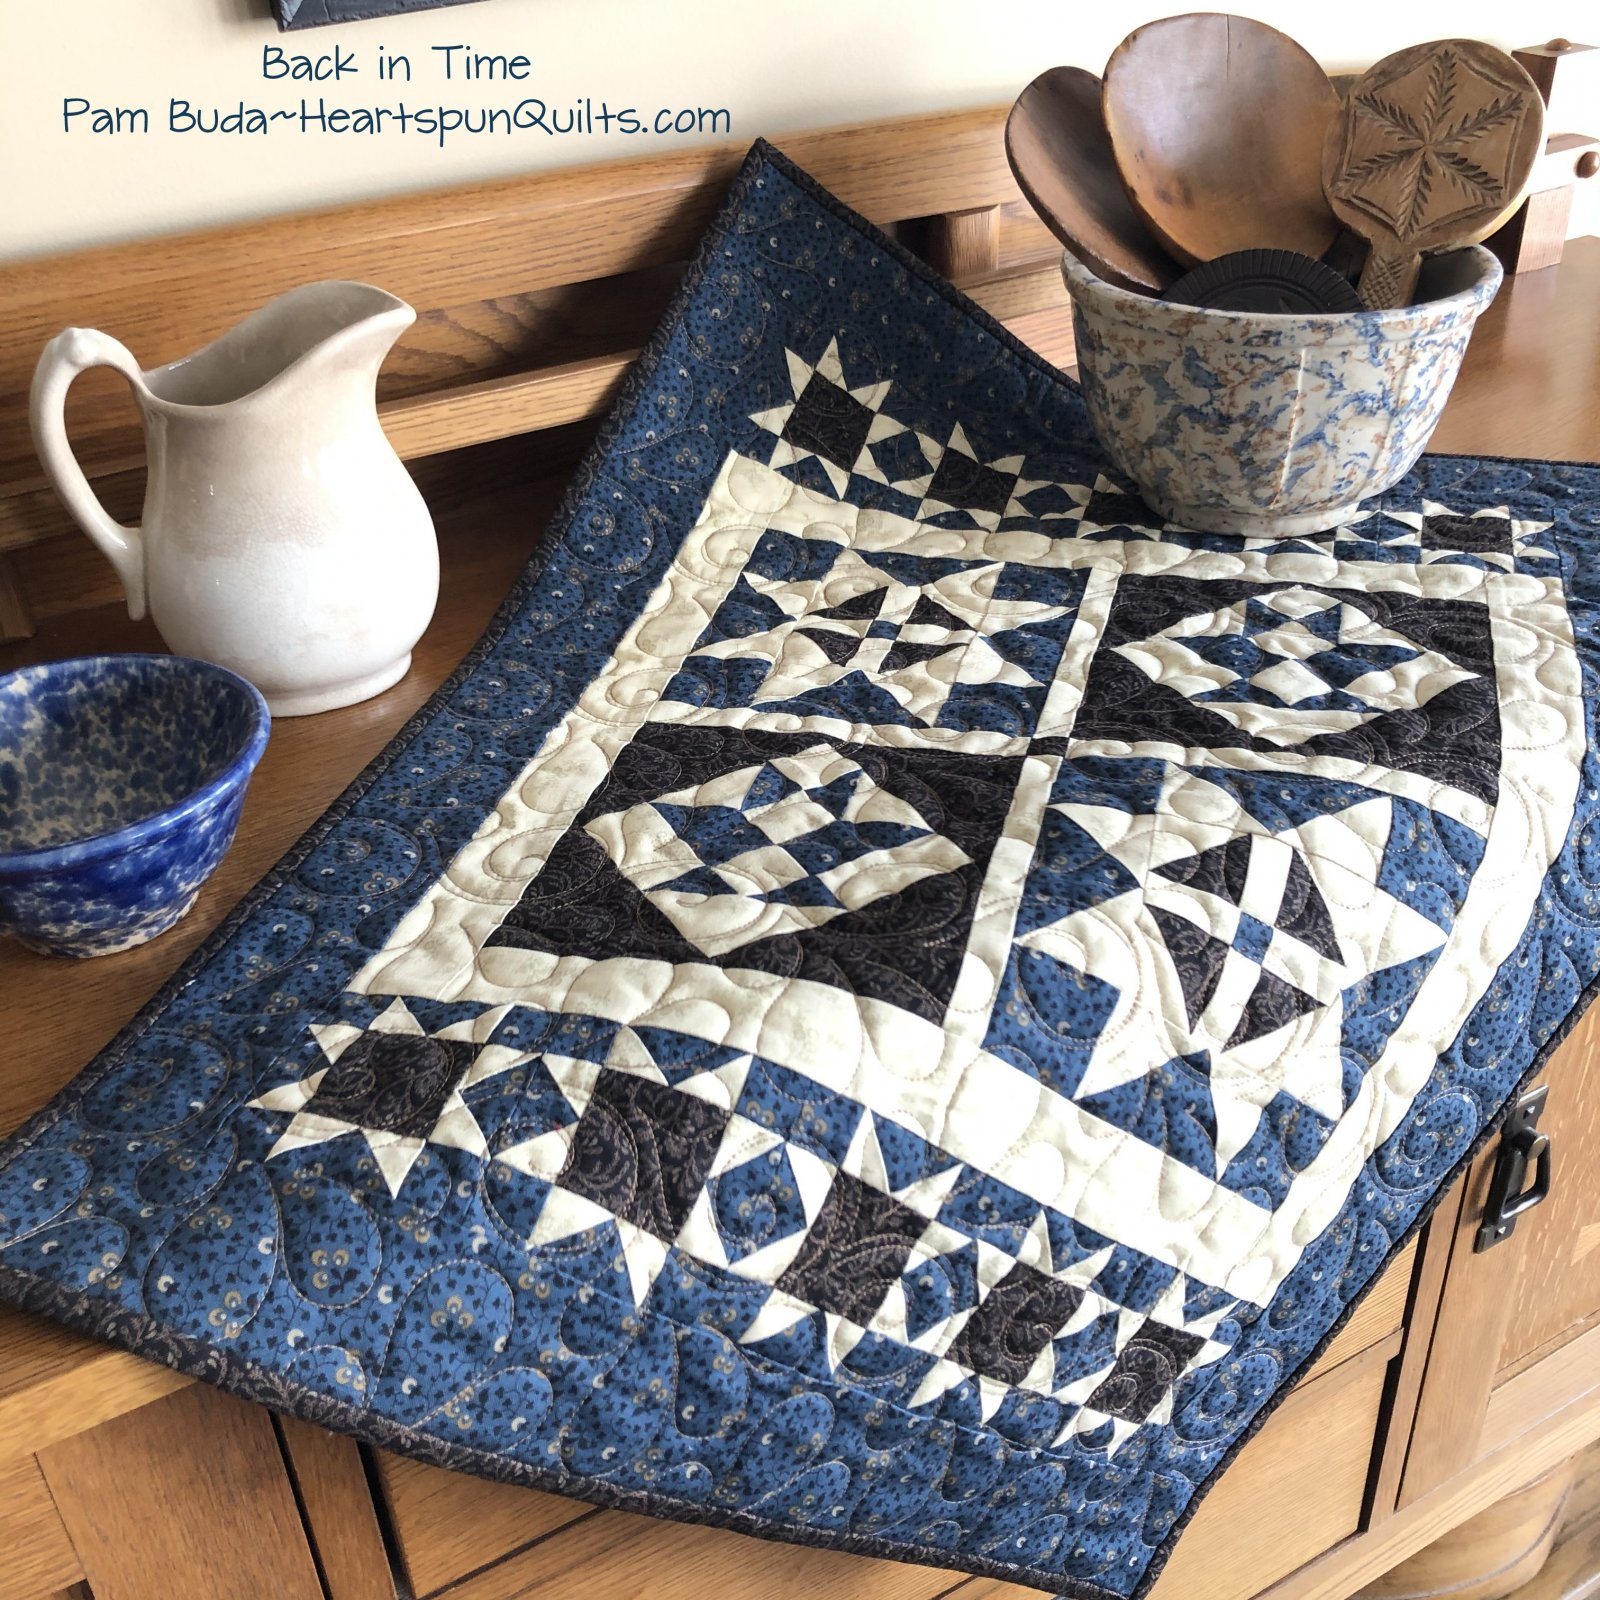 Back in Time Quilt ~ Pattern Download